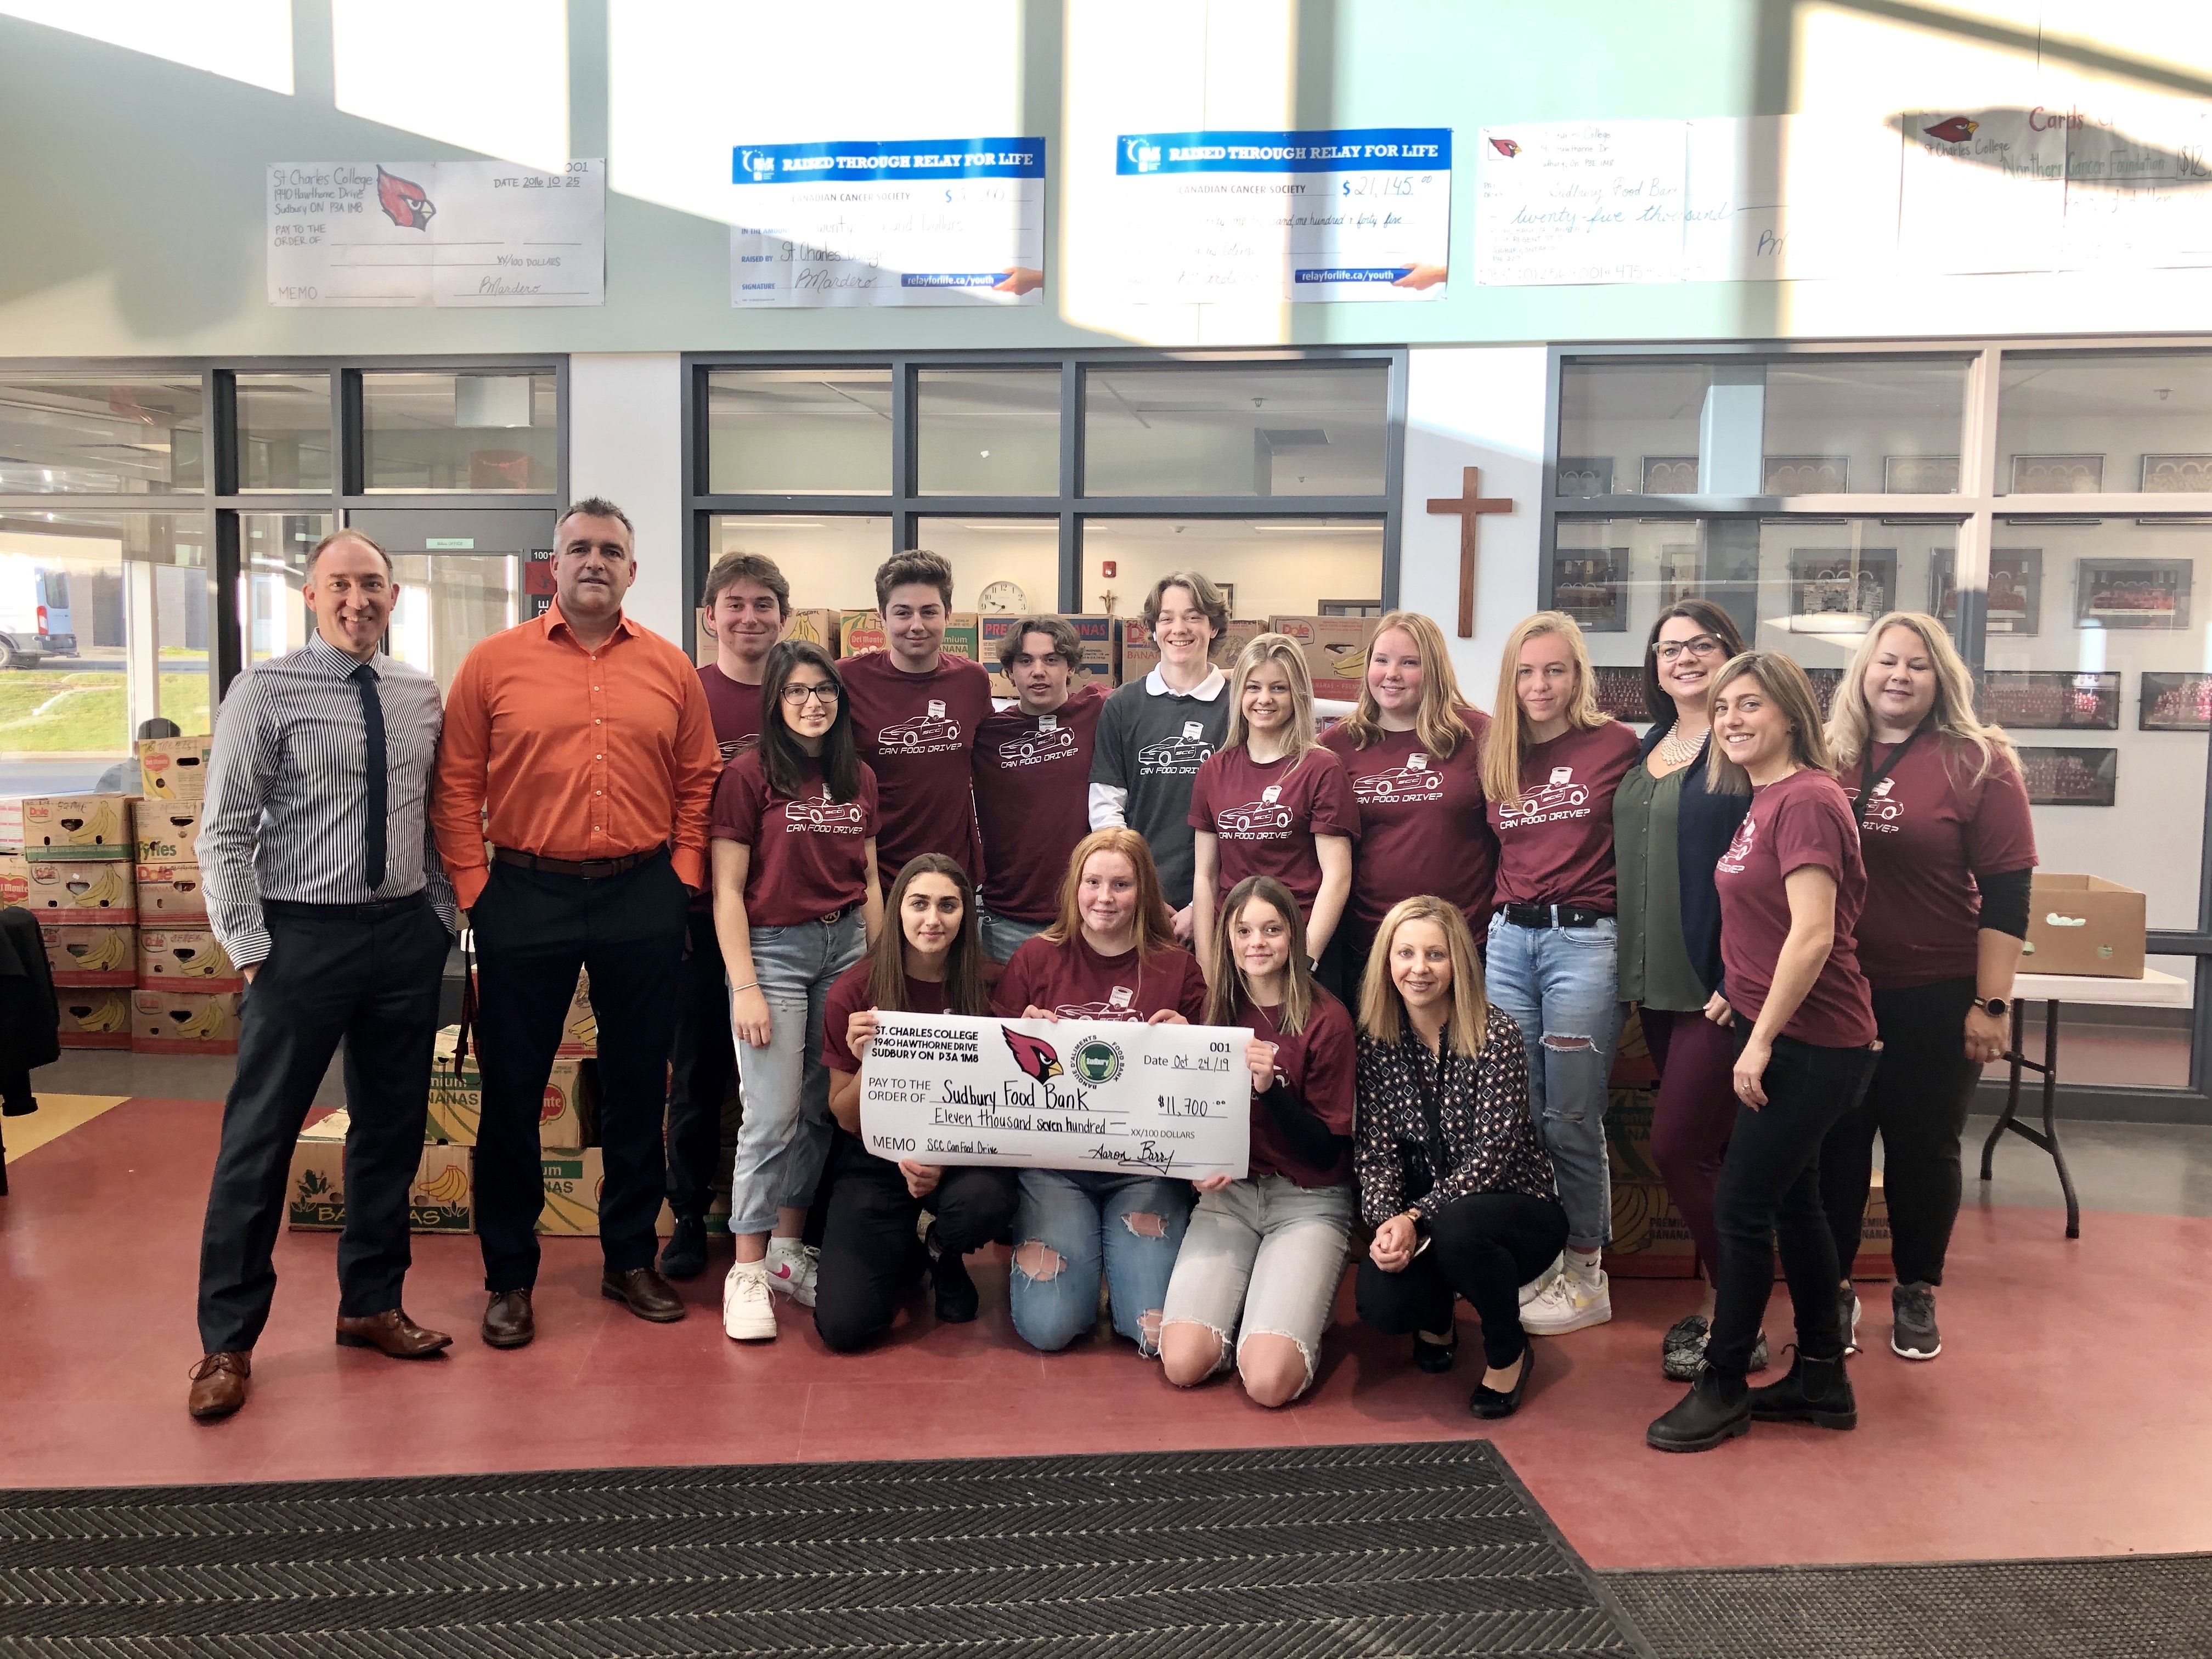 Staff and students gather together with a giant cheque for over $11,000